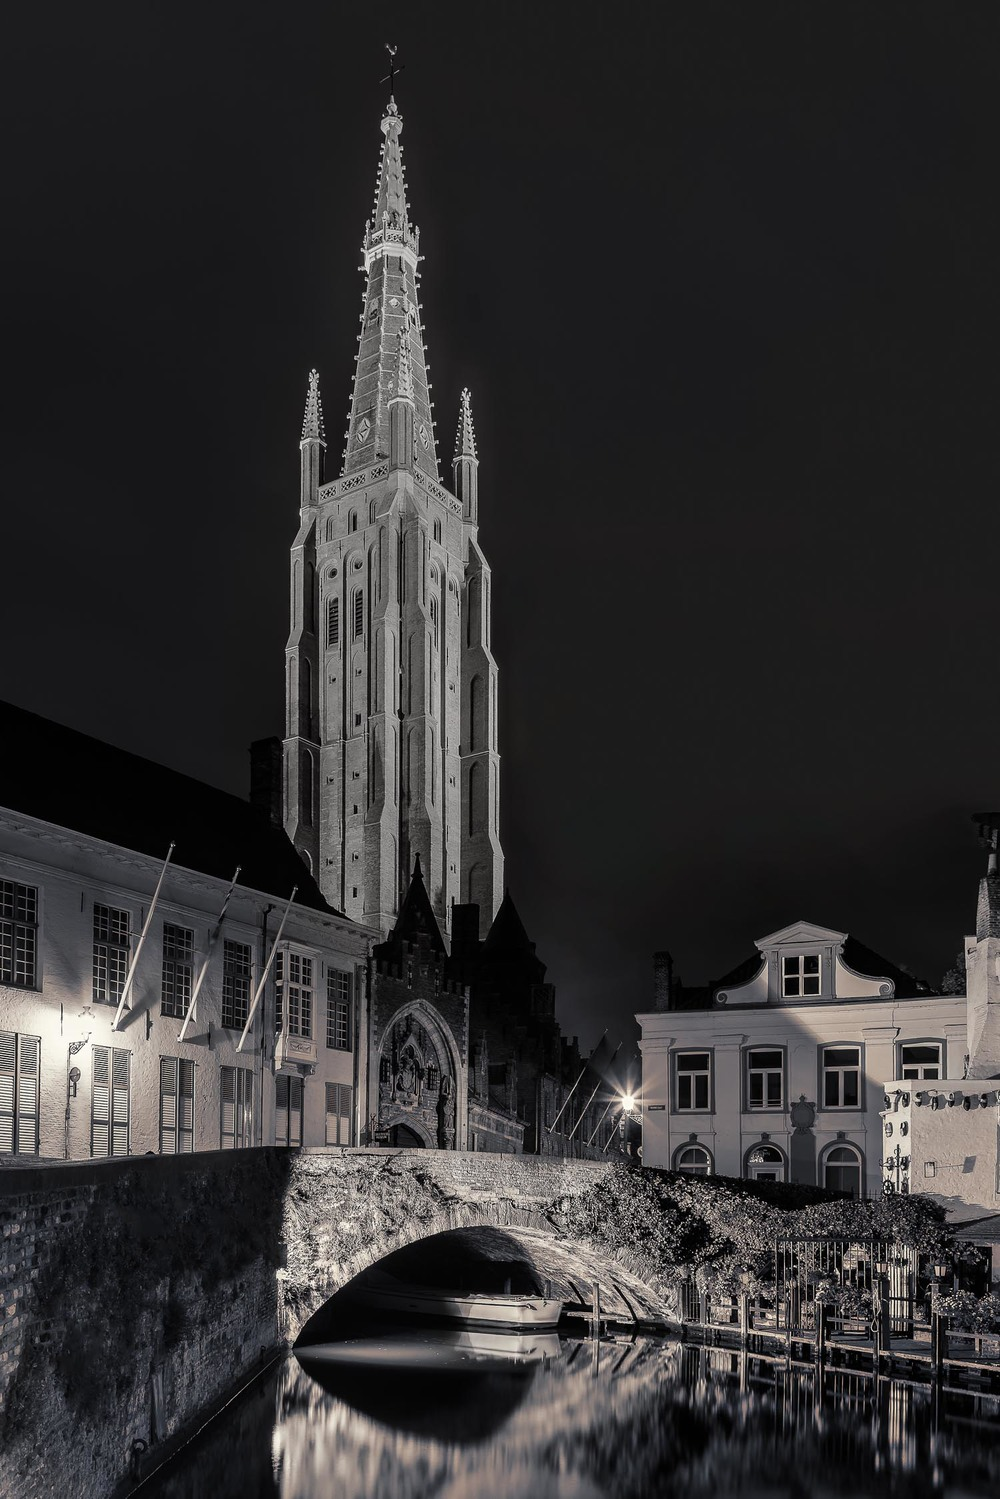 Church of Our Lady at Night, Brugge, Belgium